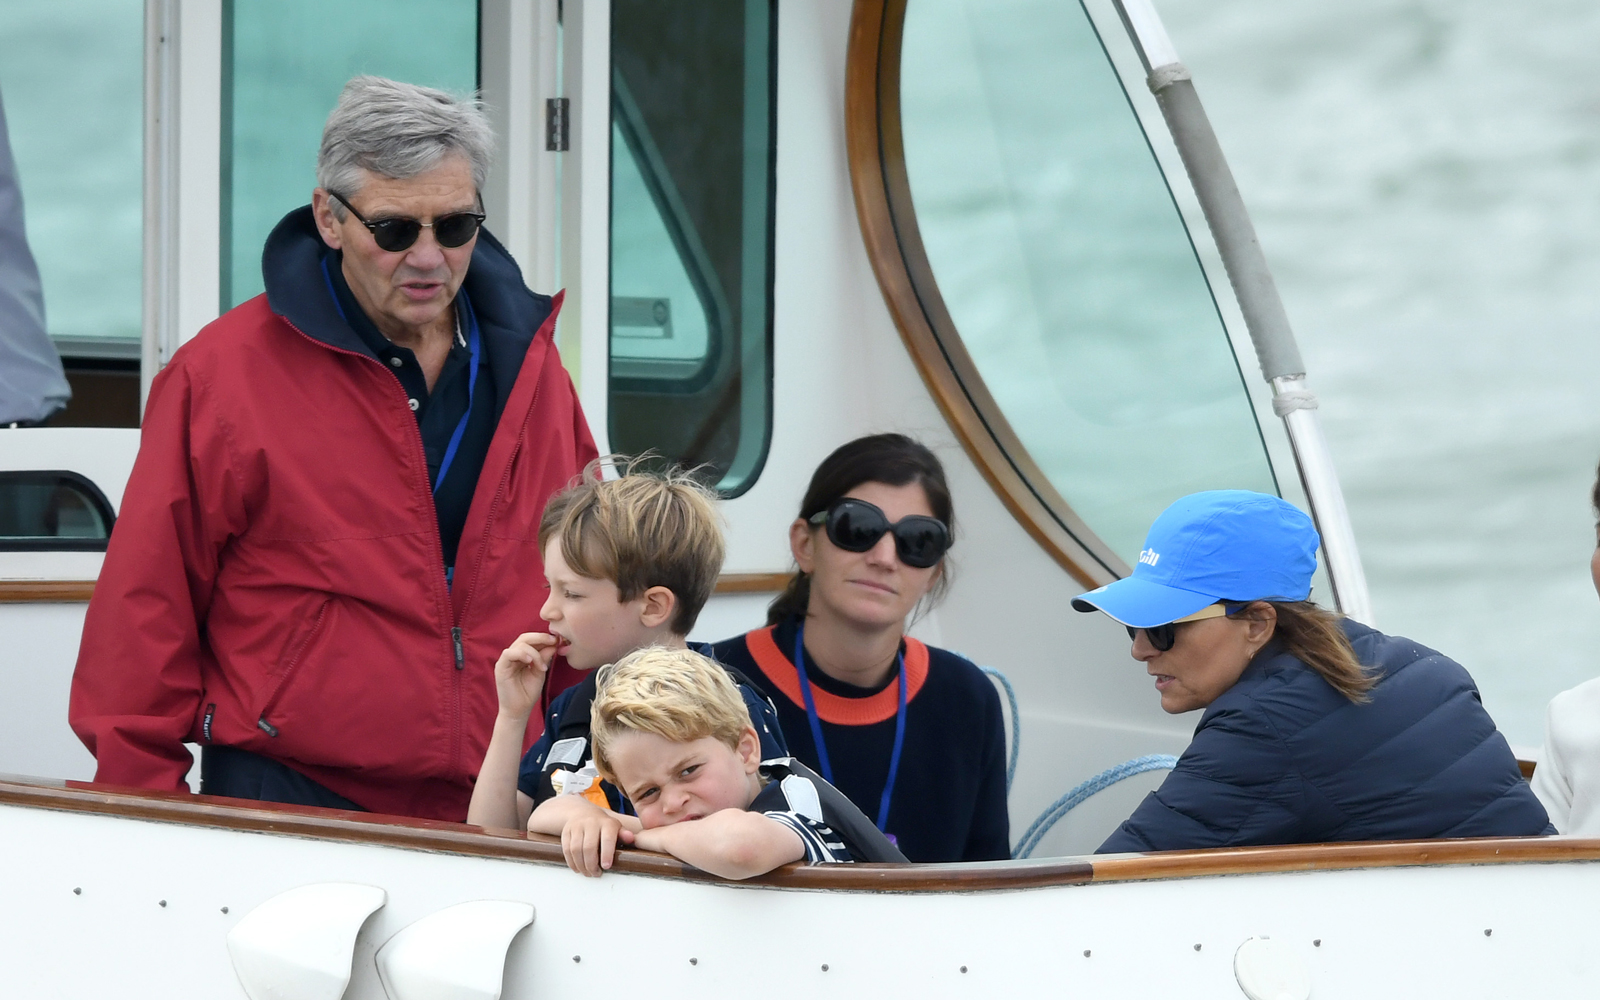 Michael Middleton, Prince George, and Carole Middleton